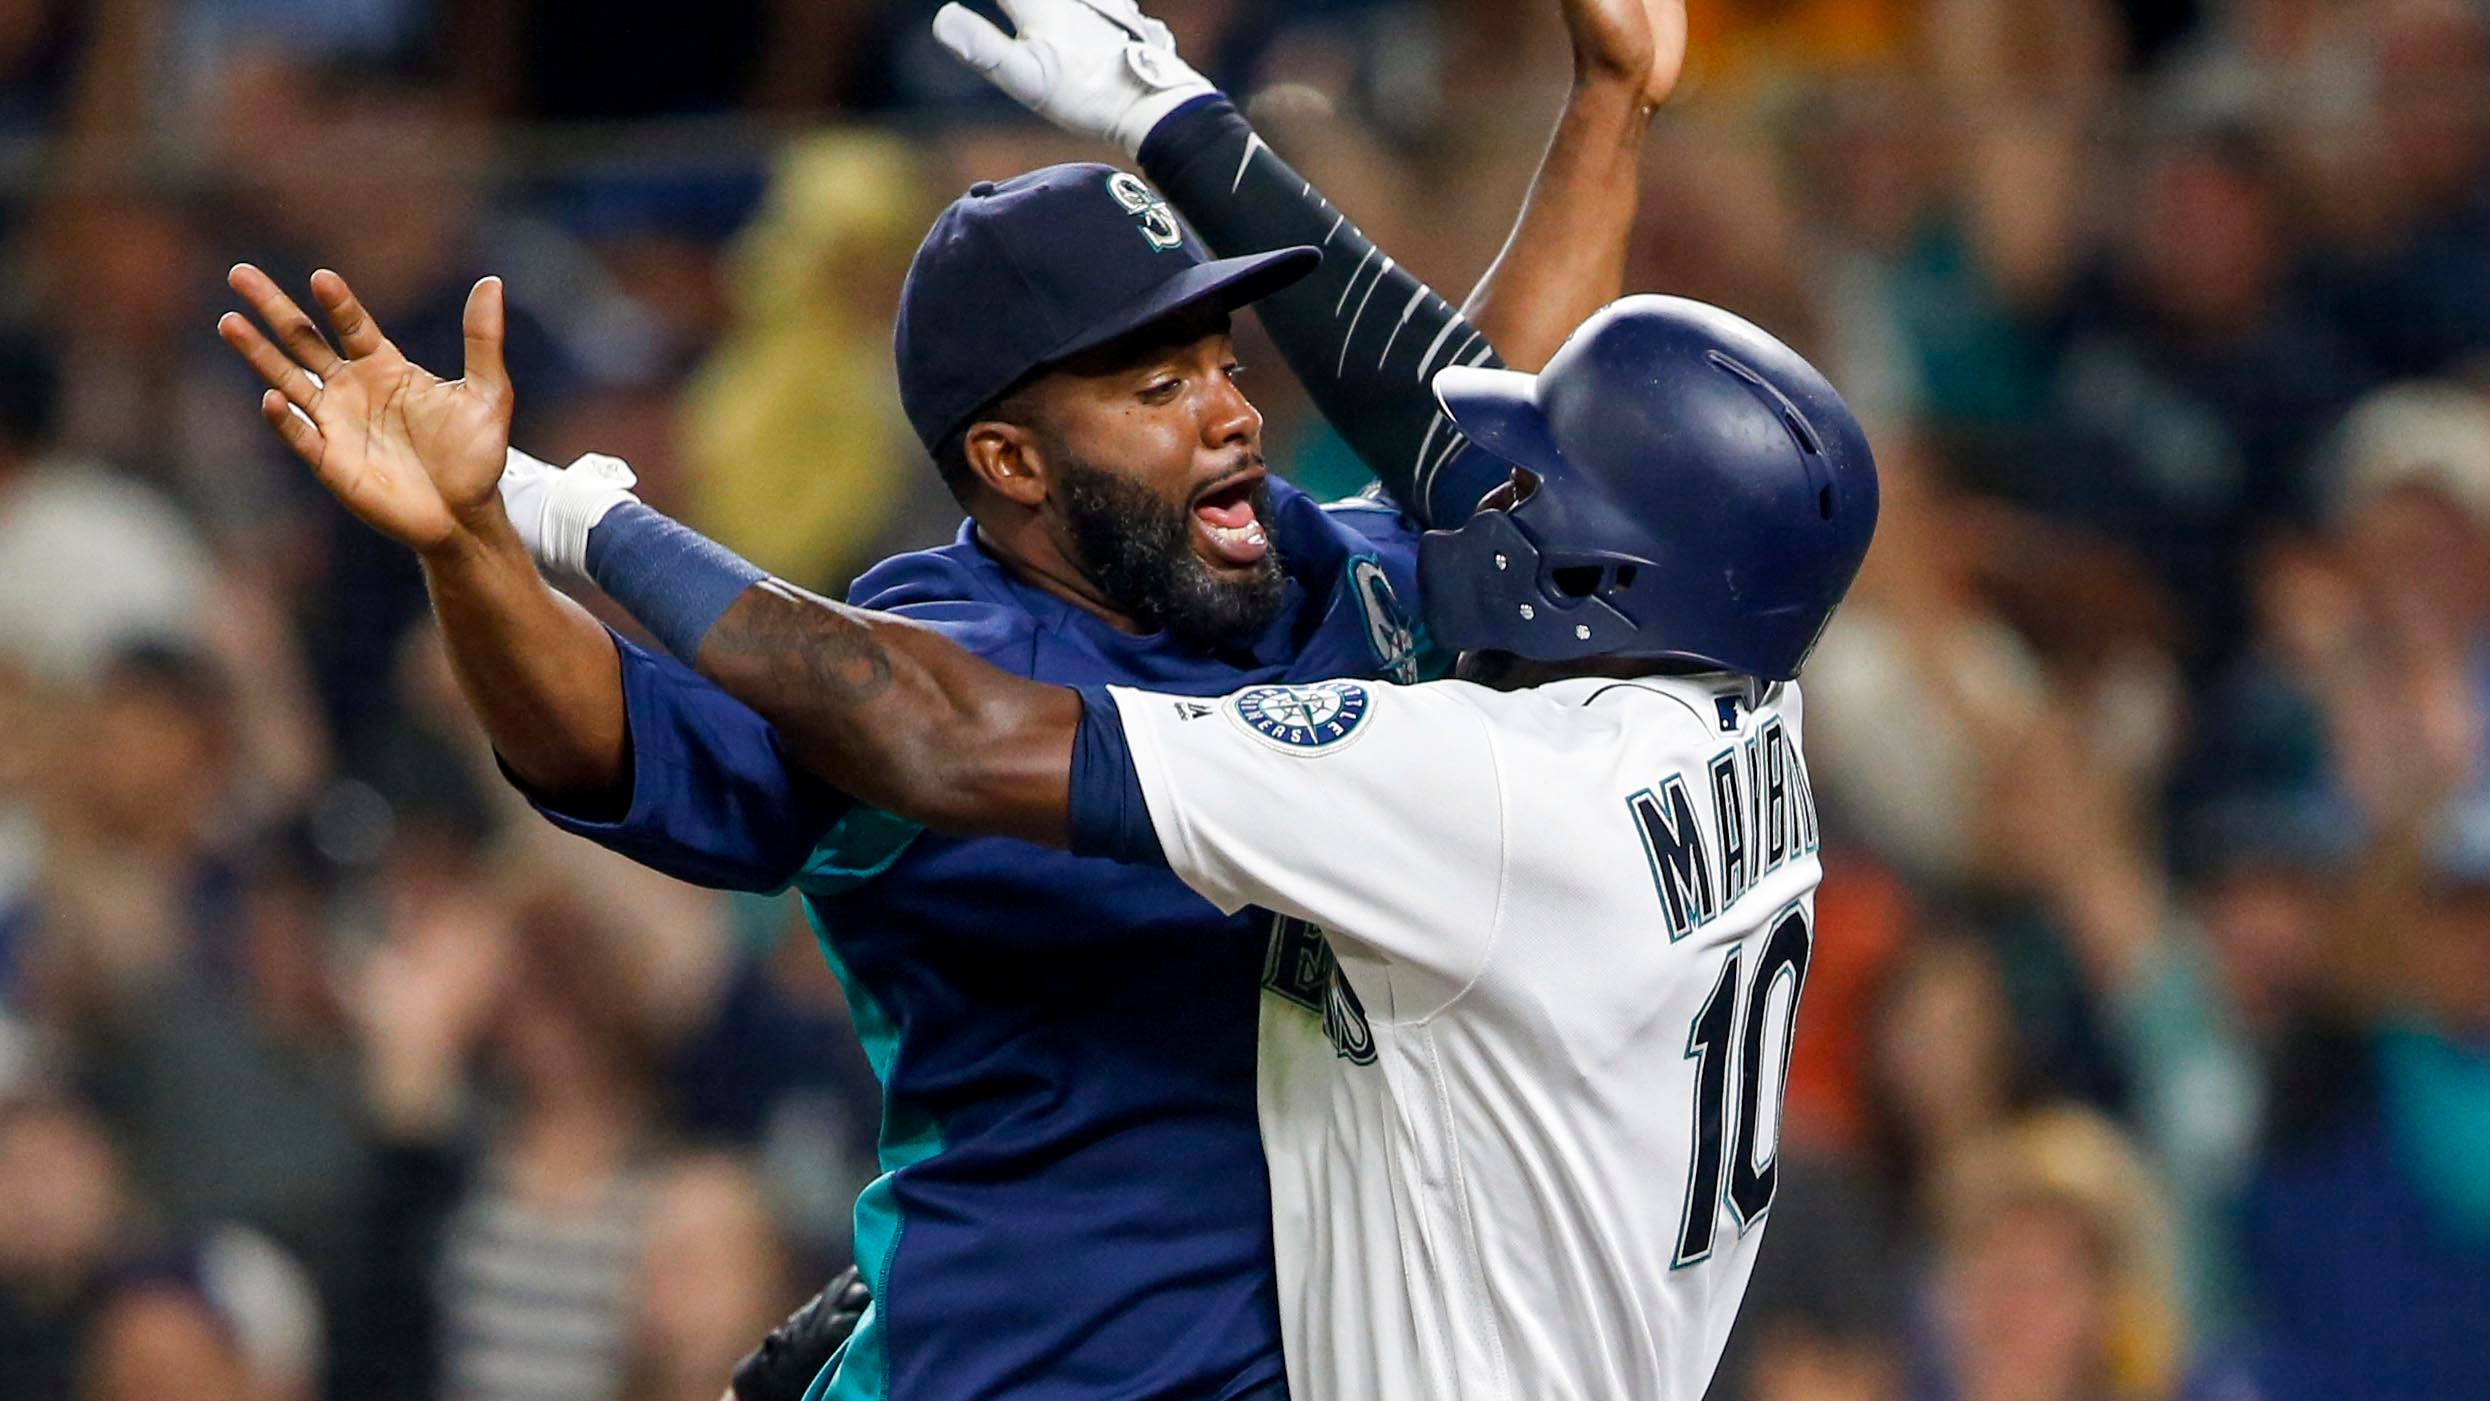 5e39b6b3-b060-4286-b388-ab5d1009489a-usp_mlb__los_angeles_dodgers_at_seattle_mariners